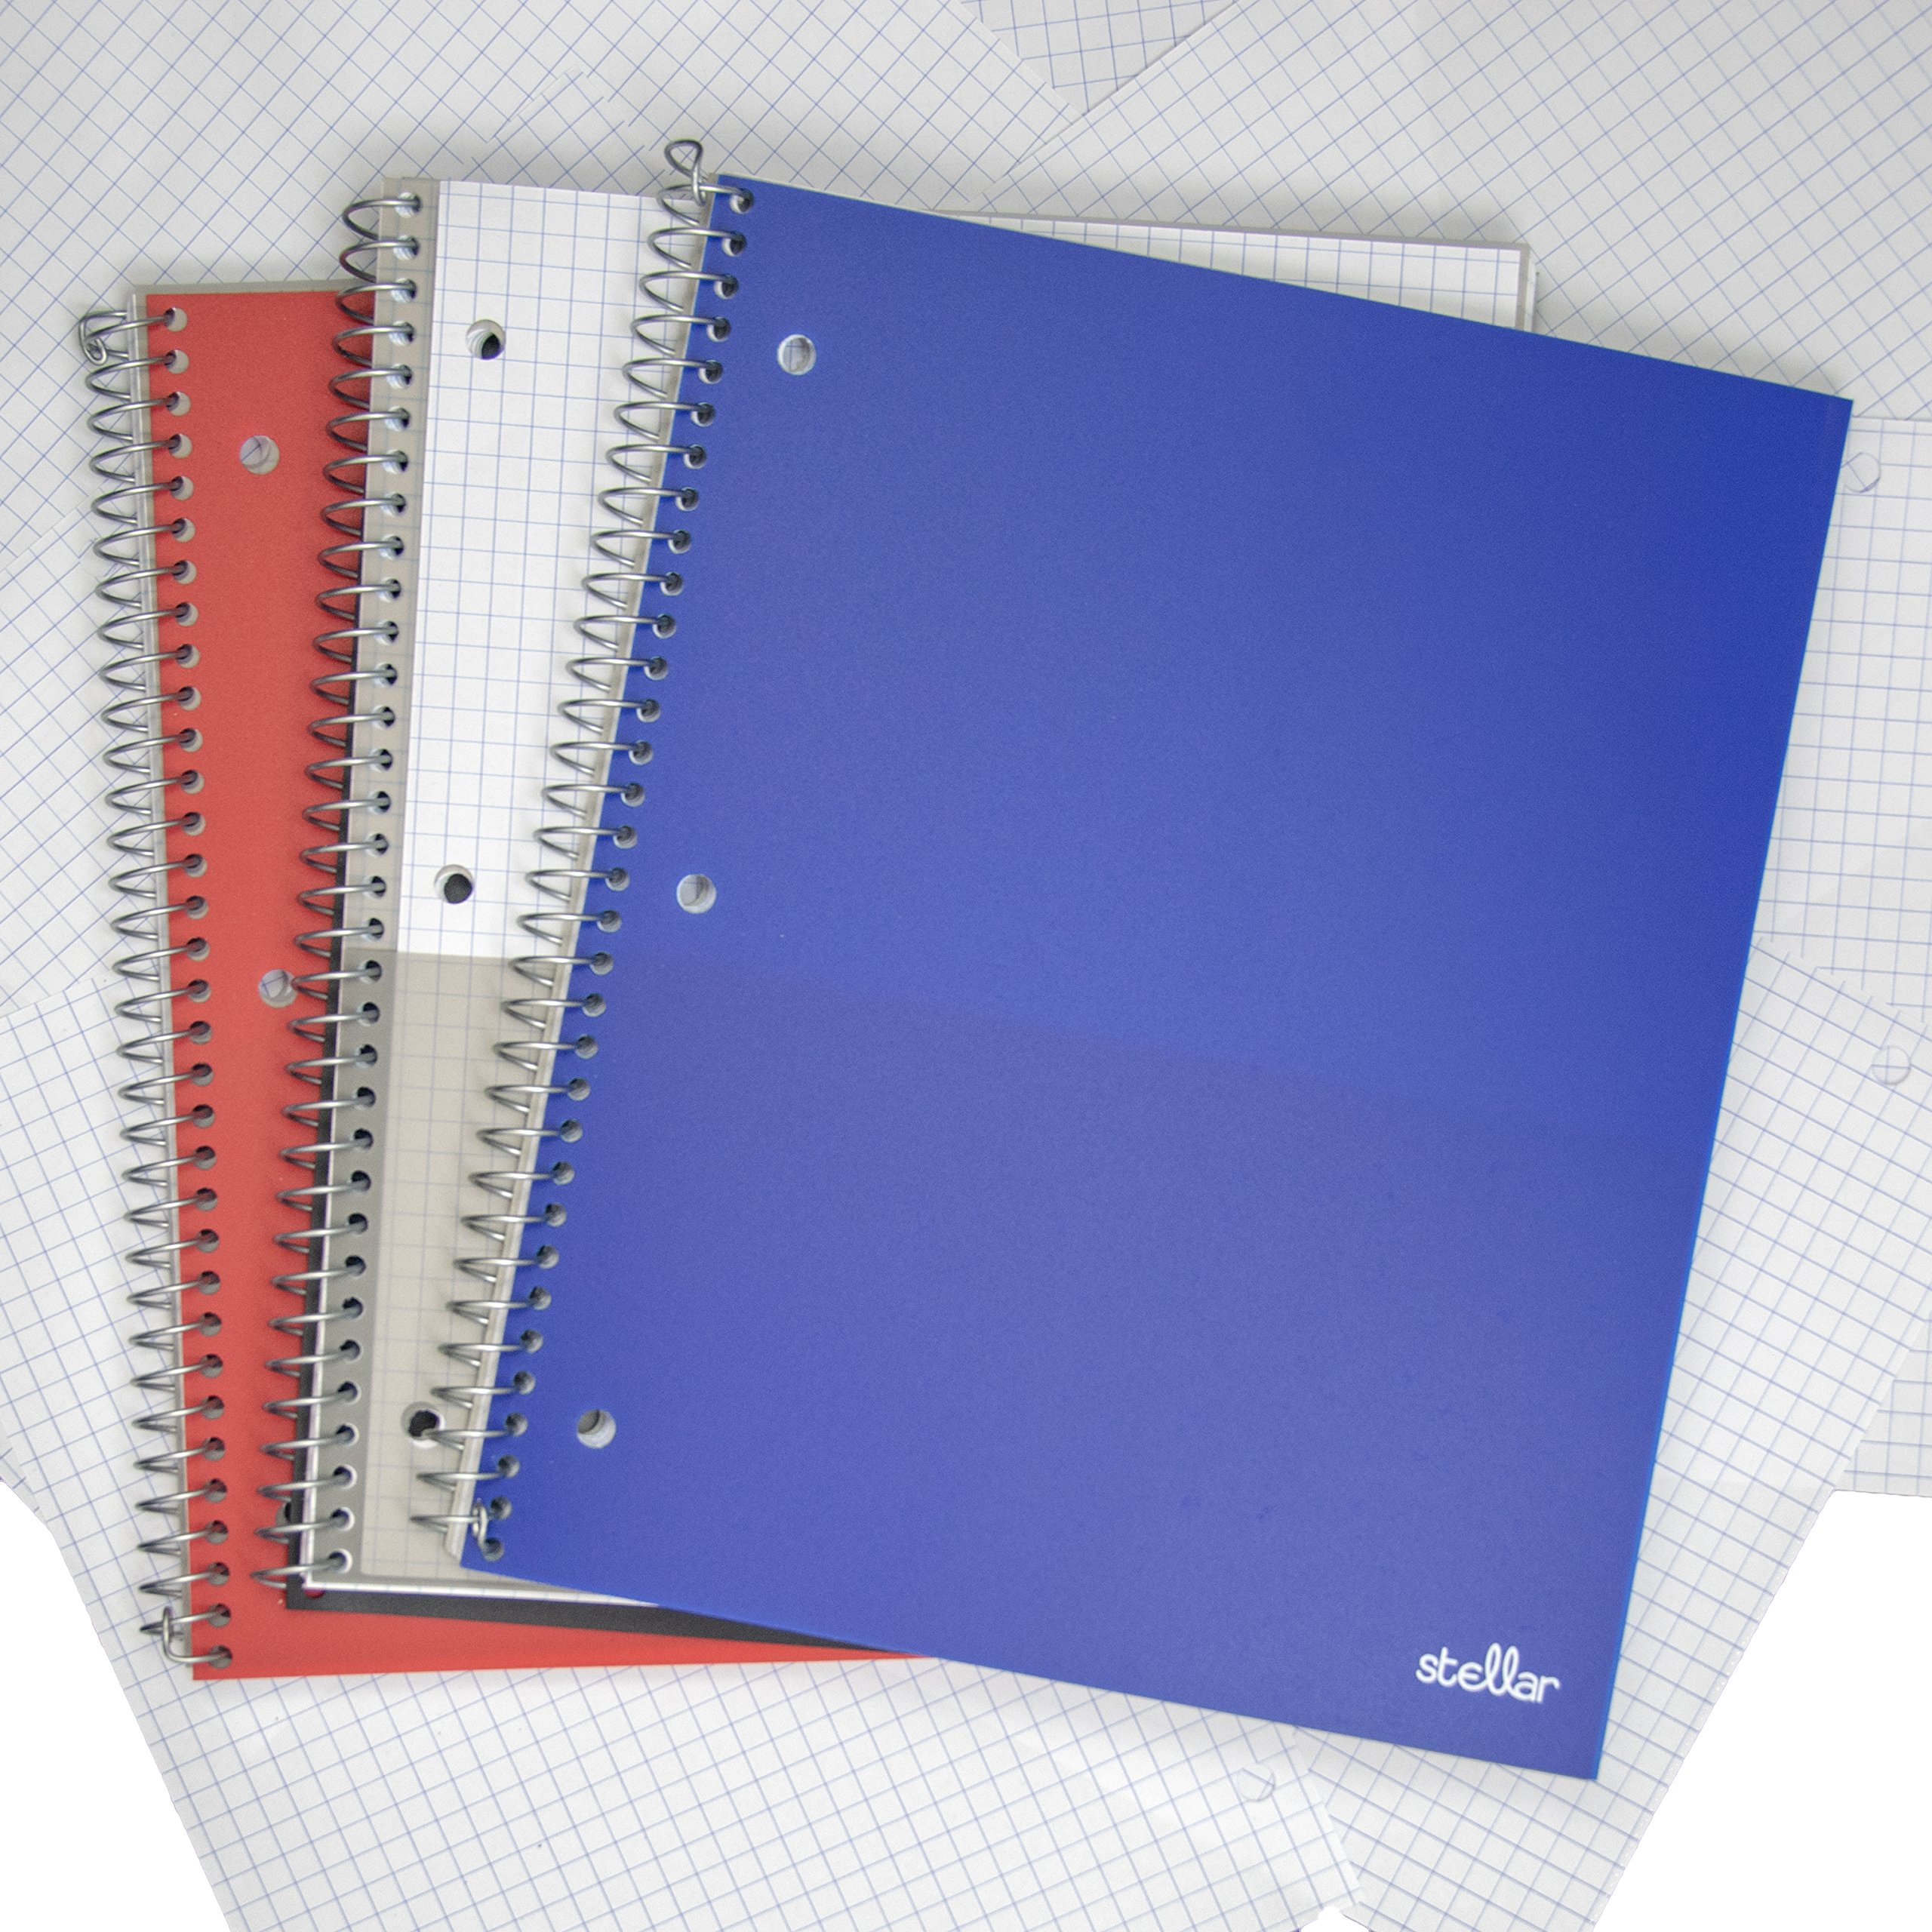 Stellar GRAPH Notebooks, Durable Poly Cover, 1-Subject, 8-1/2 x 11-Inches, 3/Pack (Black, Blue, Red)